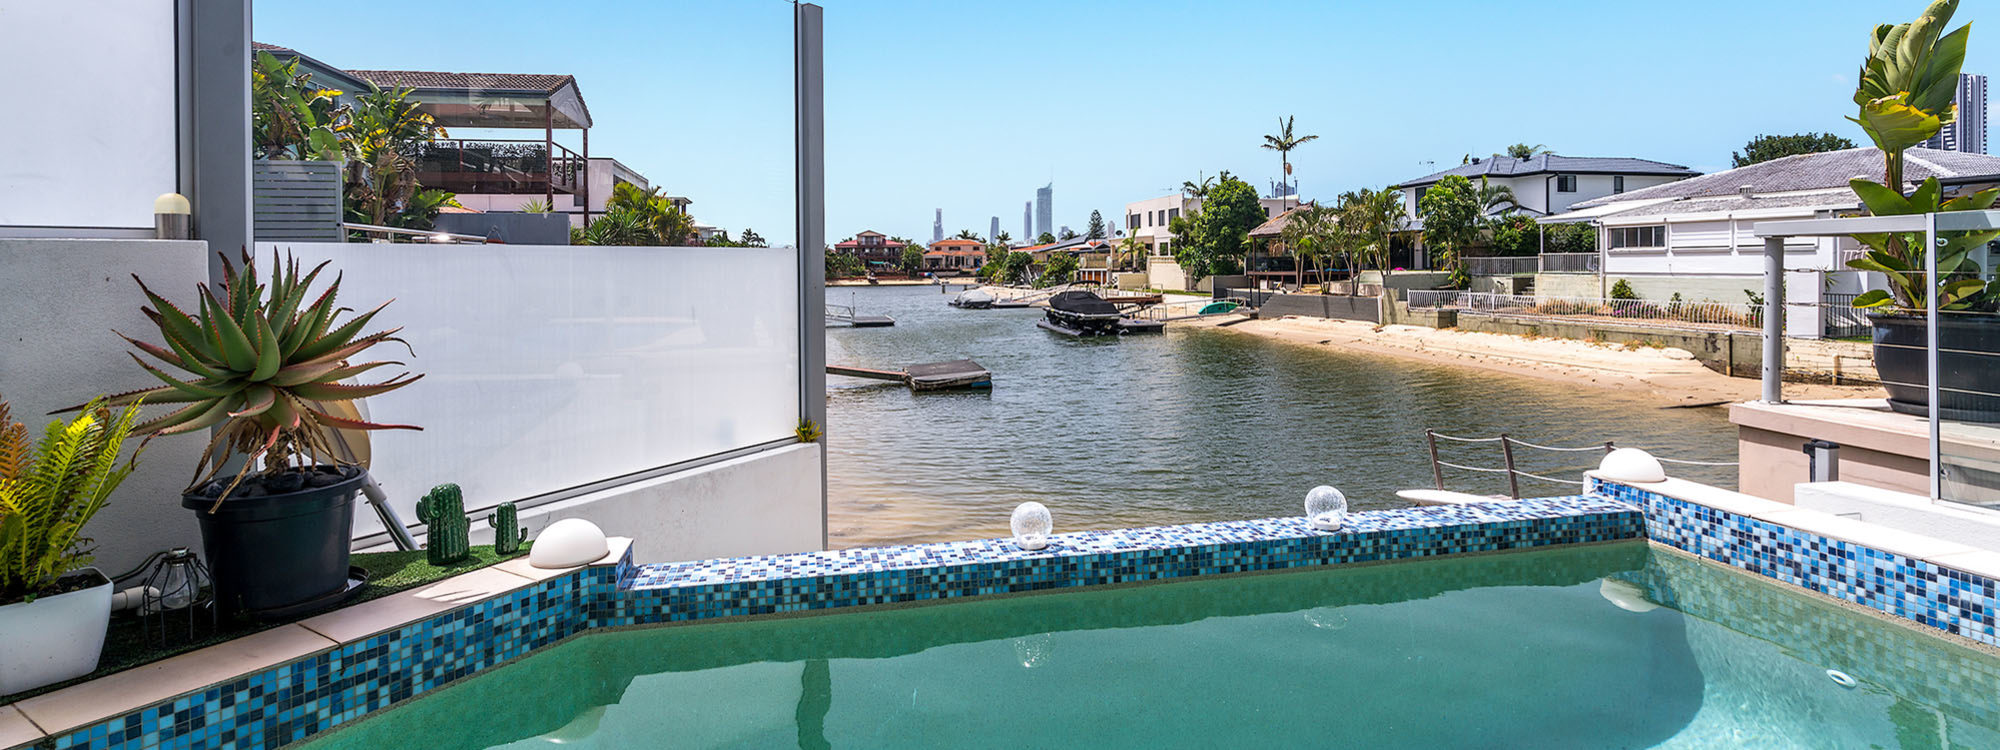 Pacifica - Broadbeach Waters - View from Deck 3